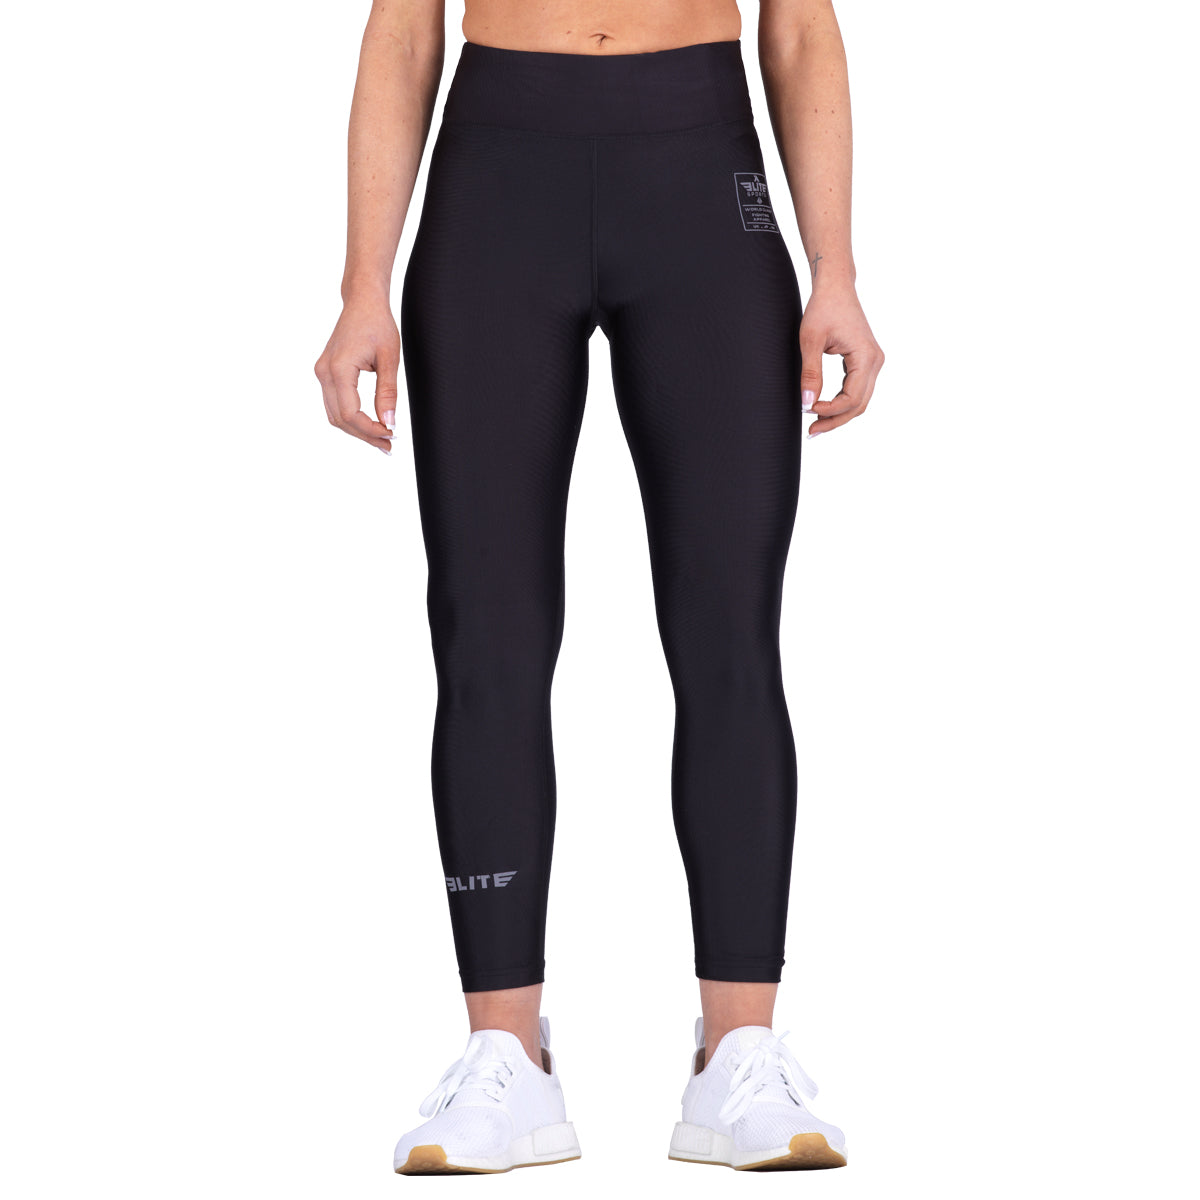 Elite Sports Black Women Compression Taekwondo Spat Pants